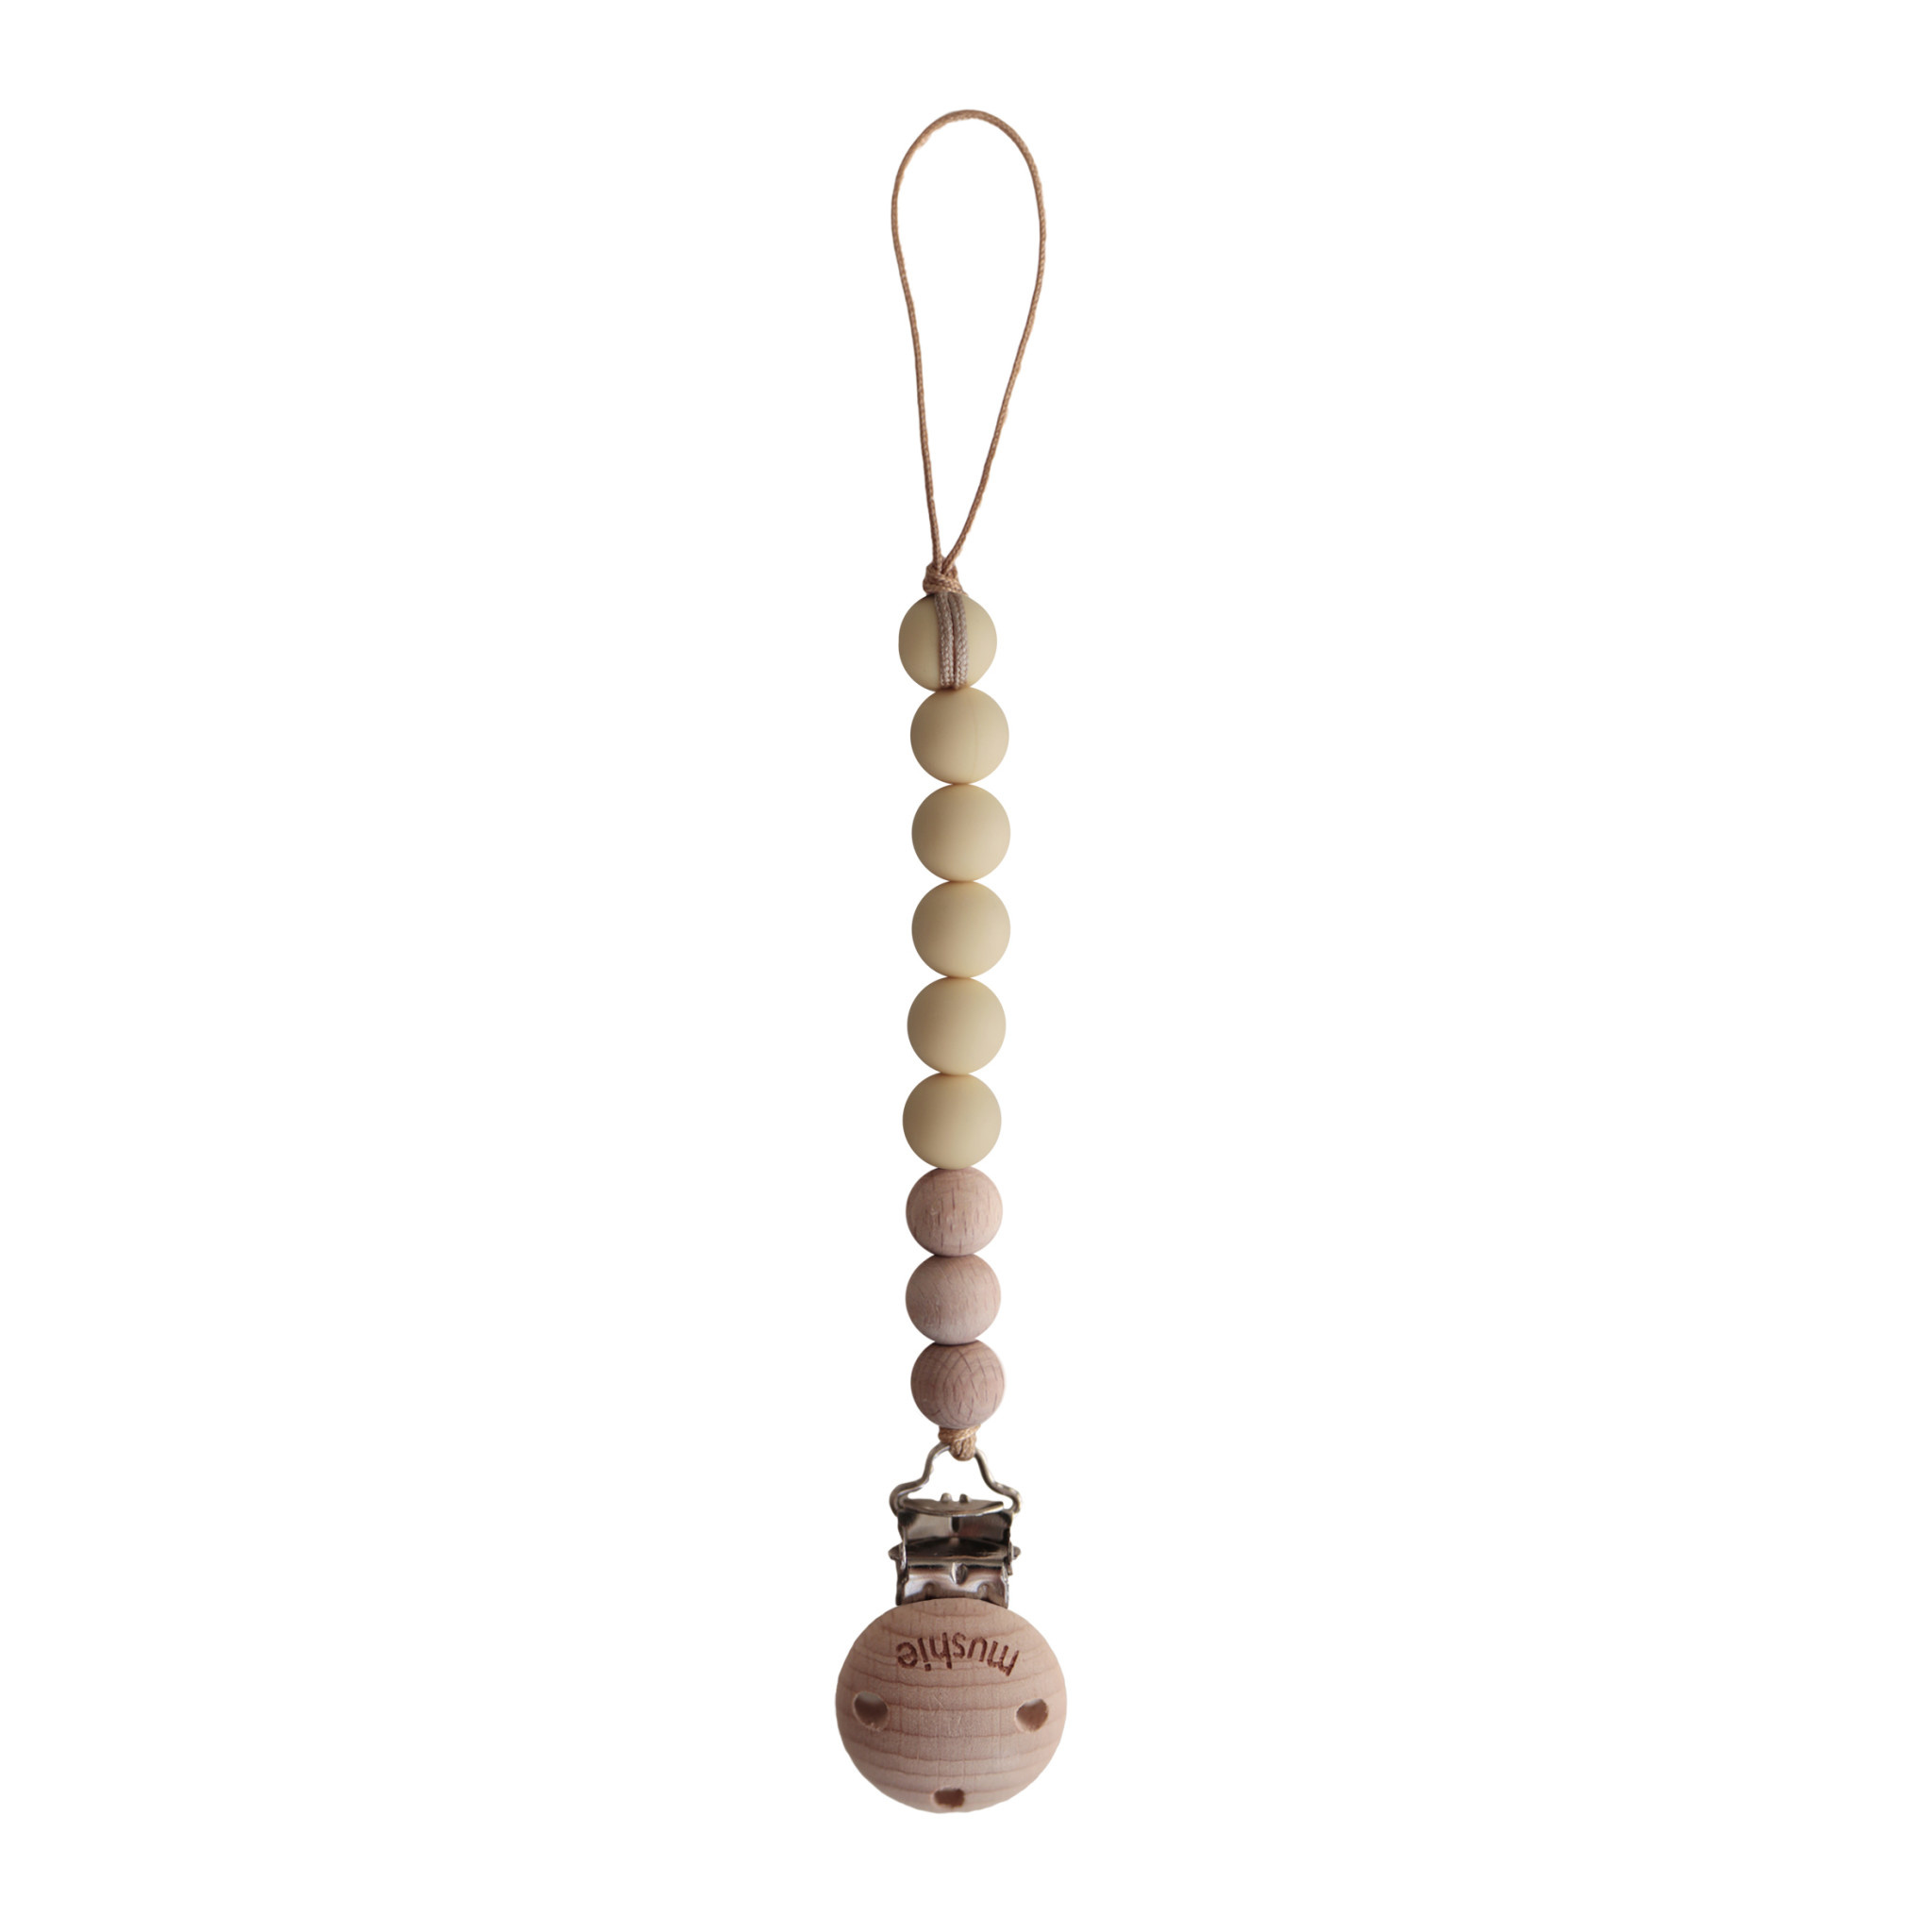 Cleo fopspeenketting mutted yellow/wood-1